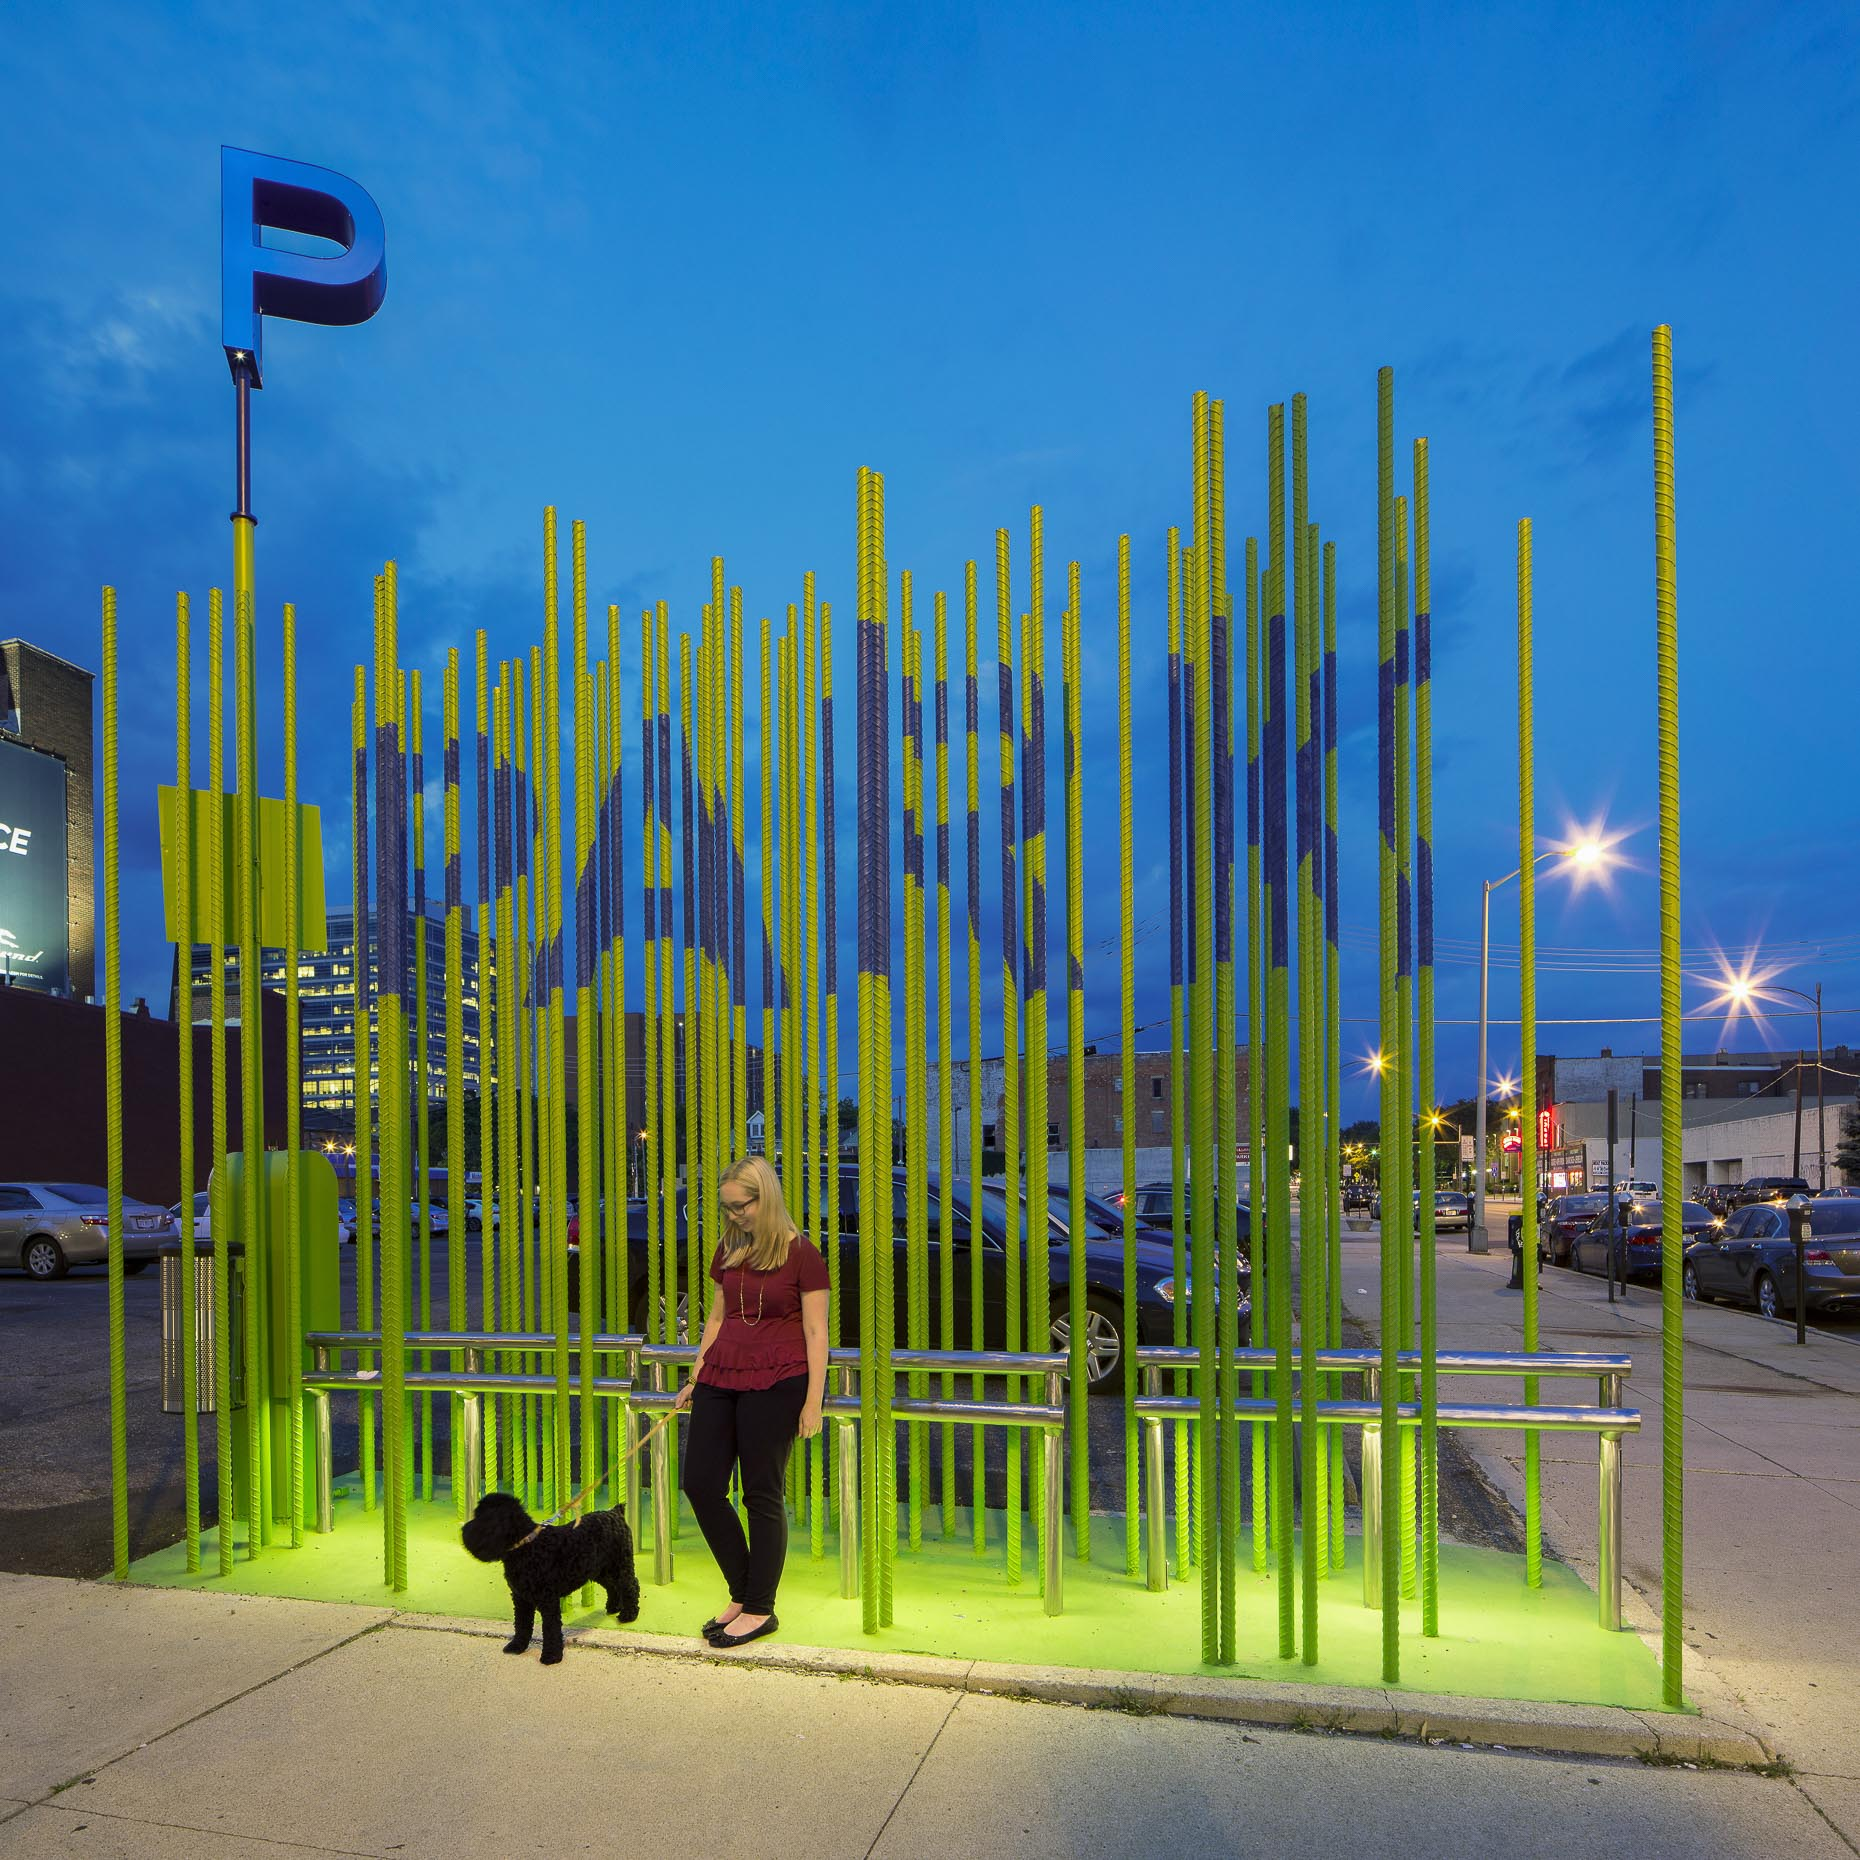 PARKLot at 4th & Main by DesignGroup photographed by Lauren K Davis based in Columbus, Ohio